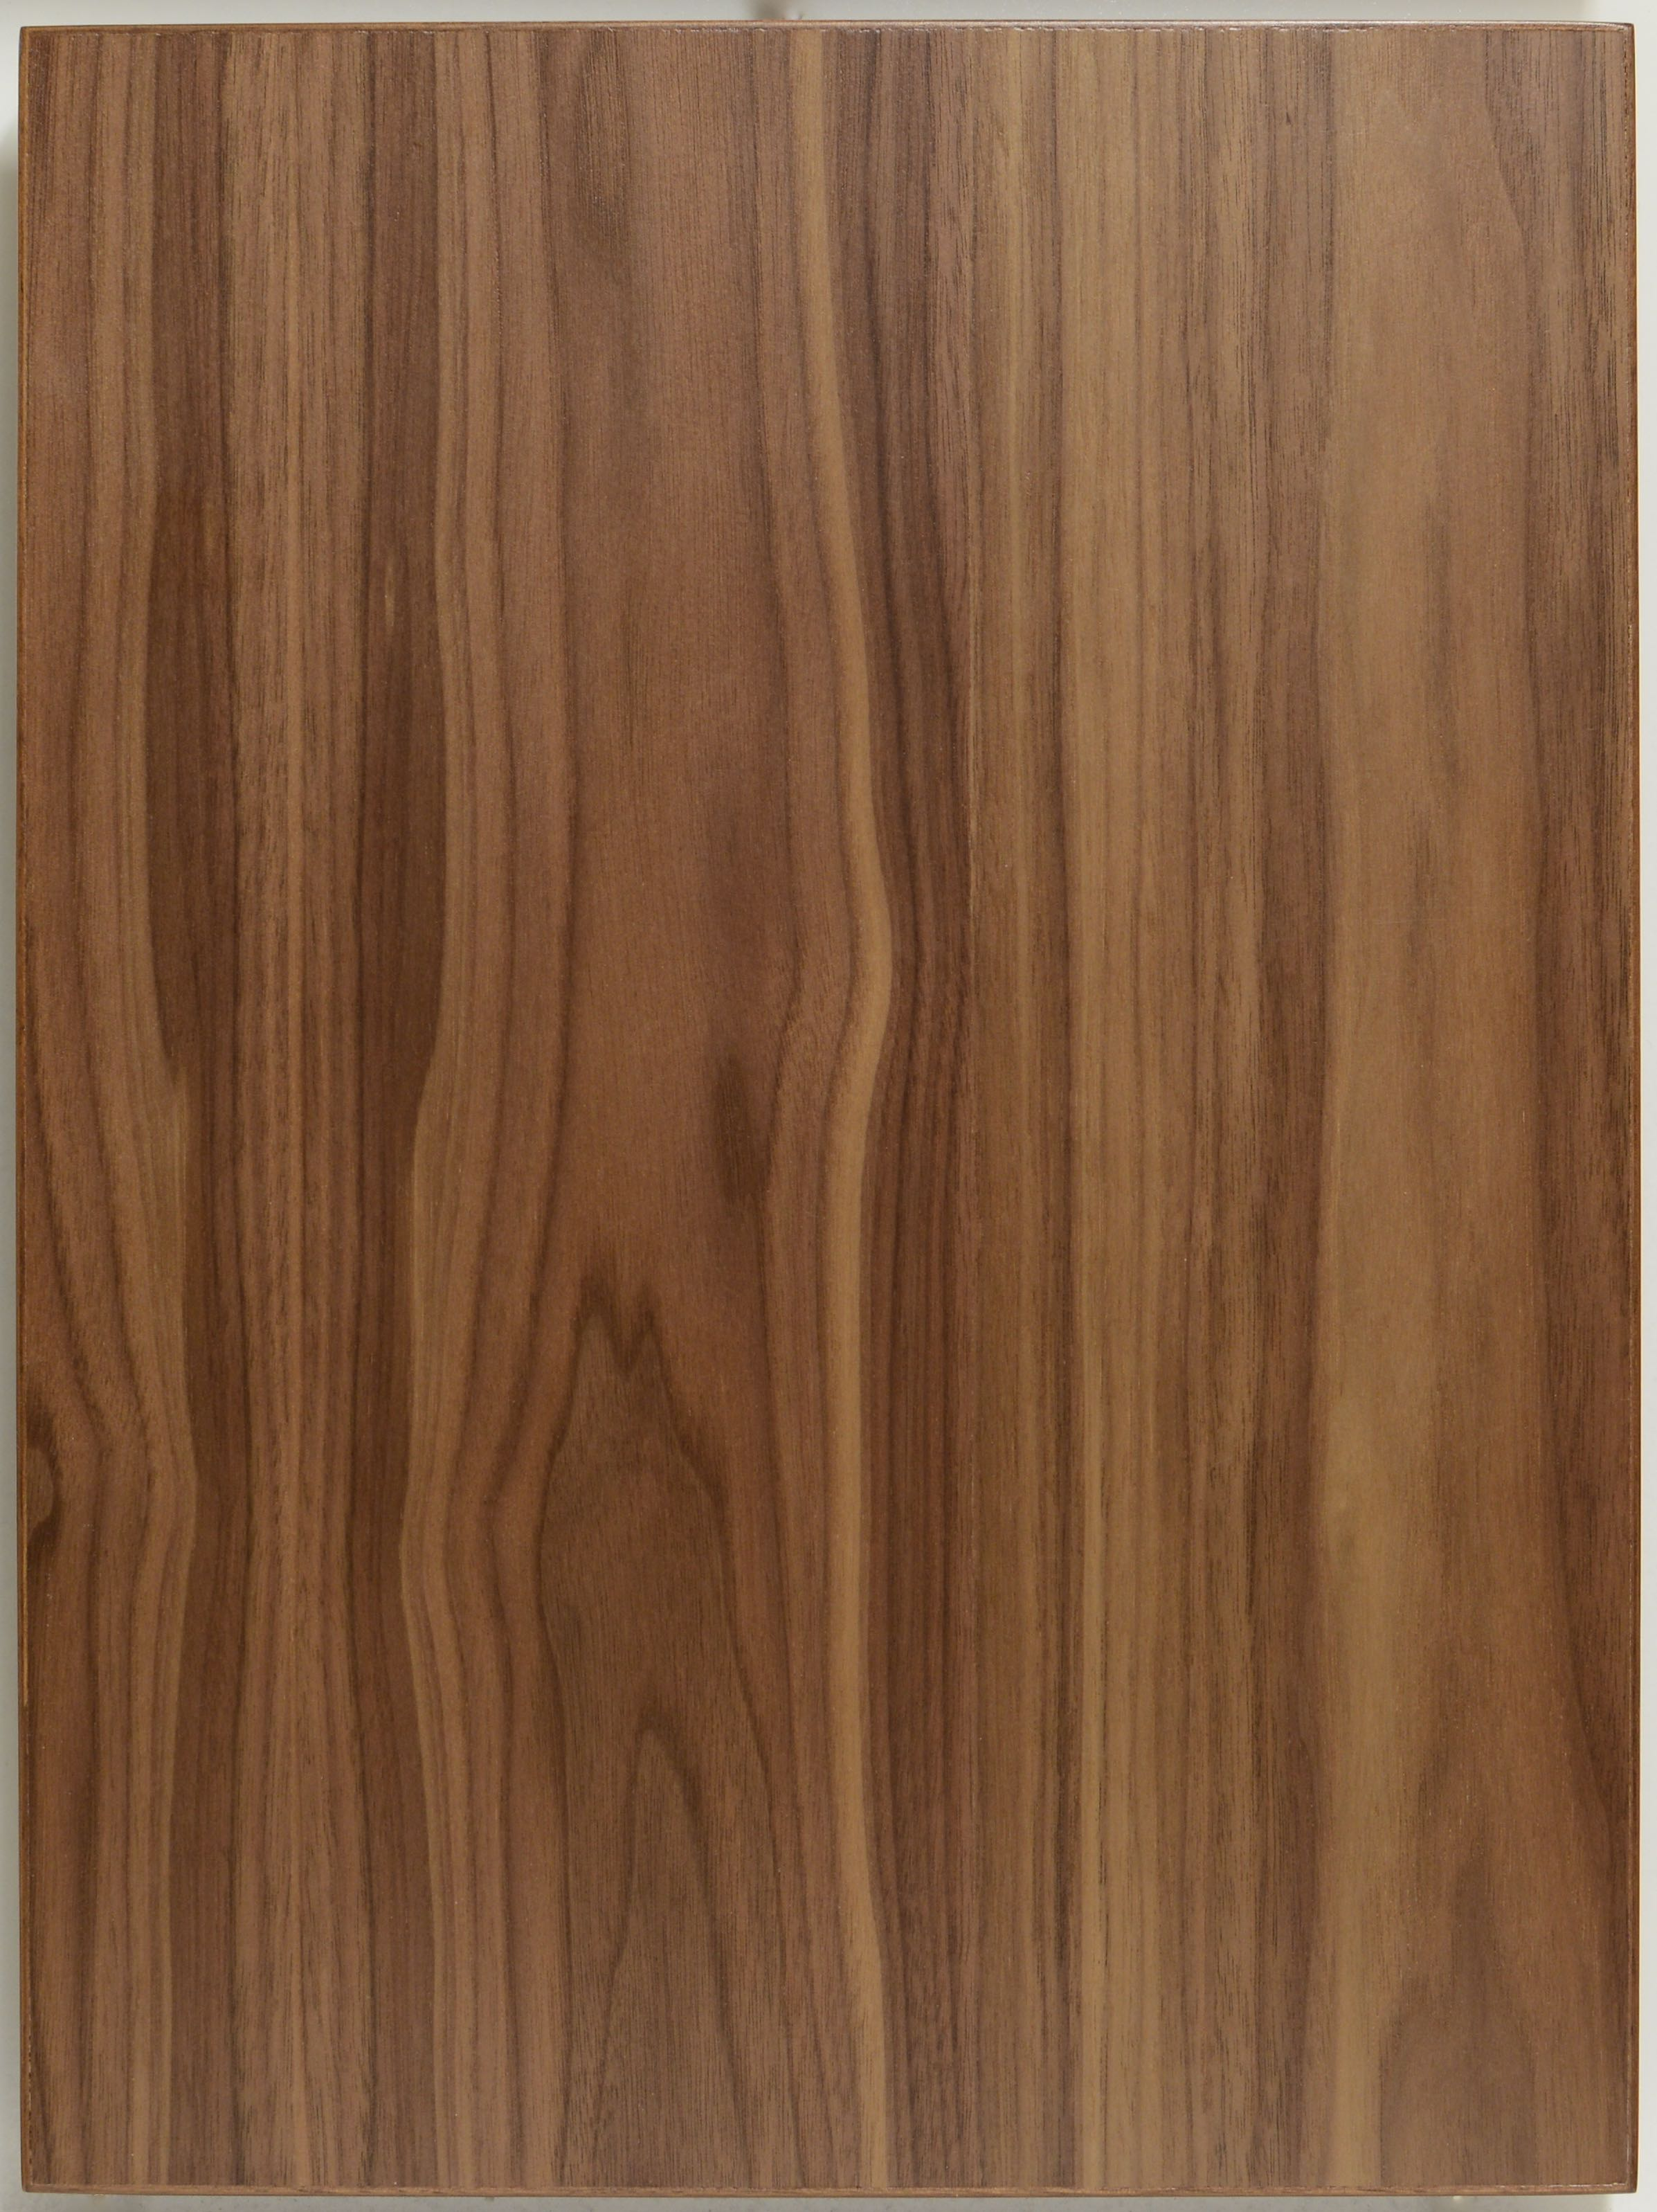 Wood Veneer Cabinet Doors Natural Wood Veneer Kitchen Cabinet Doors By Allstyle